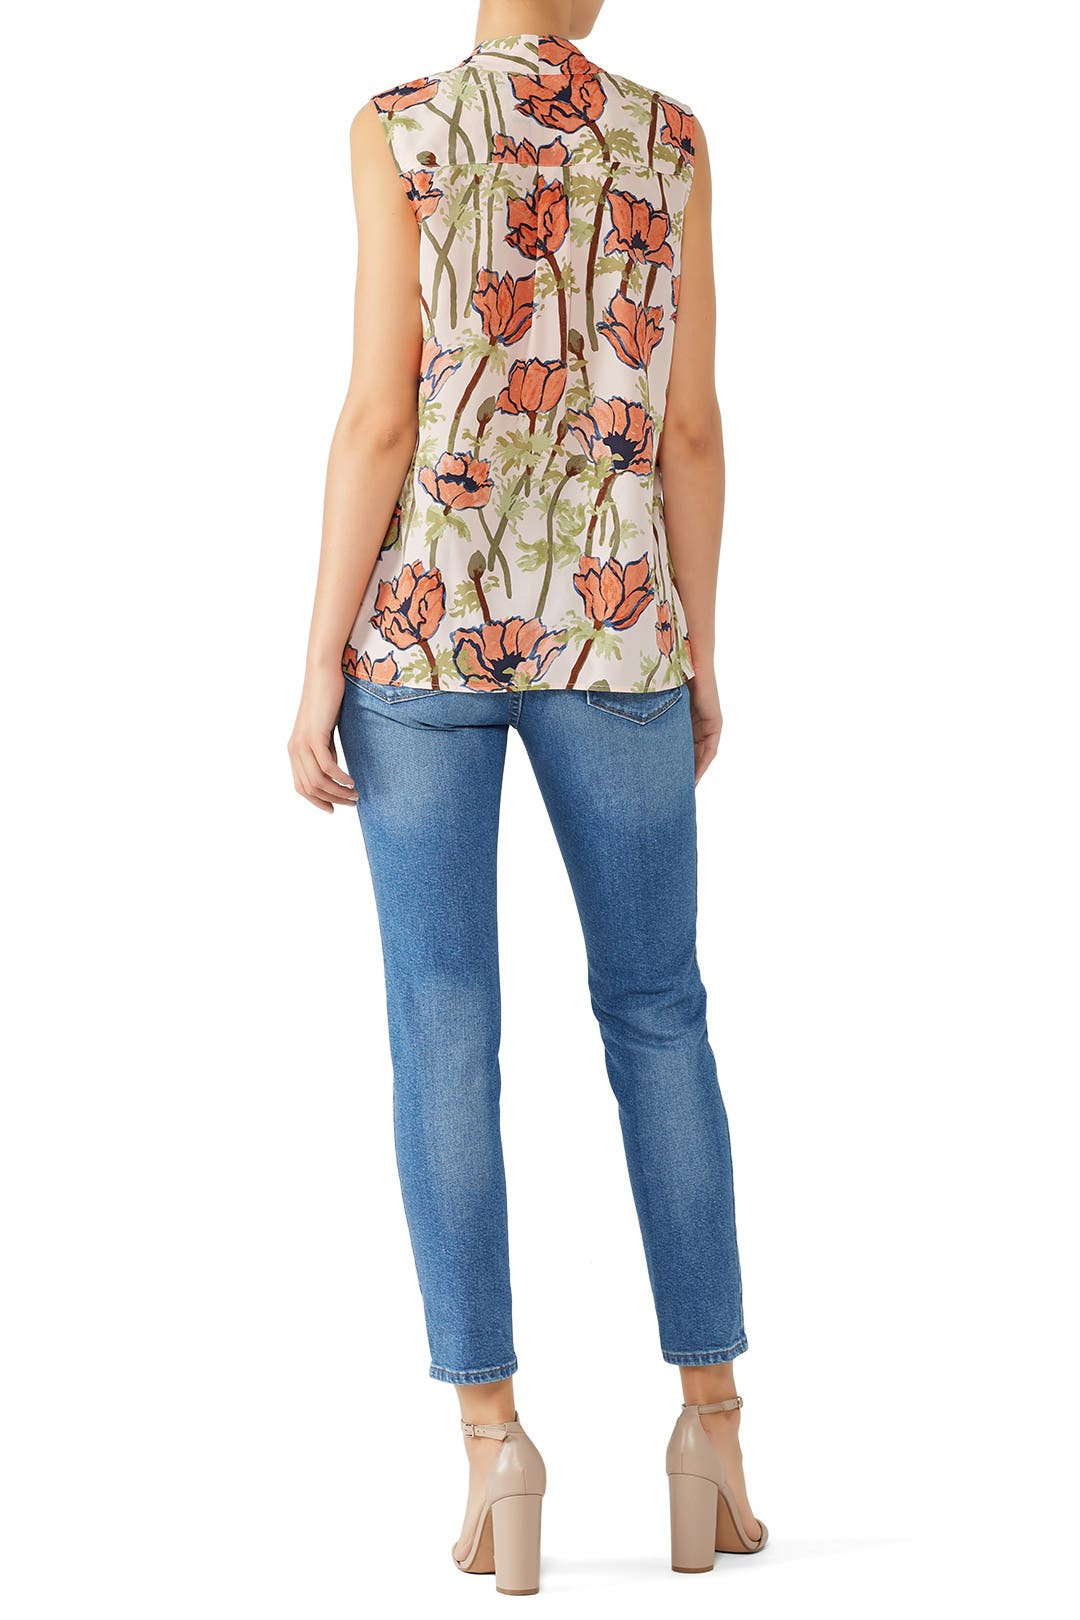 ed3e04c16a0366 Sleeveless Tie Neck Bow Blouse by Tory Burch for  45